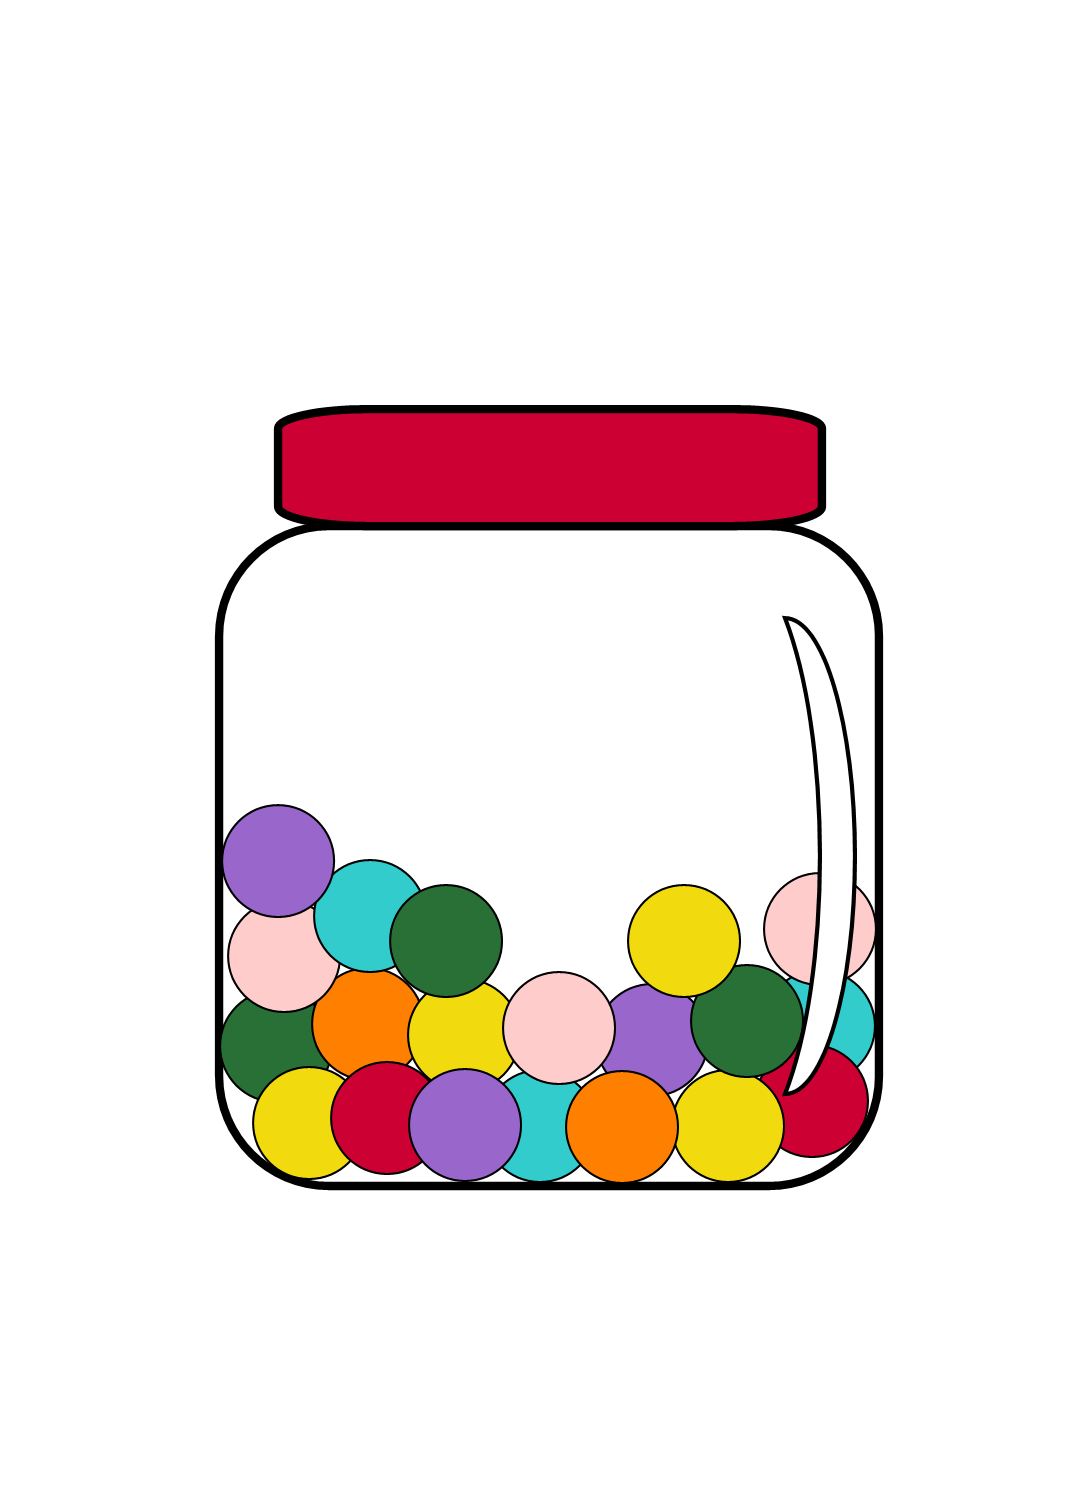 1090x1500 Gumball Clipart Colourful